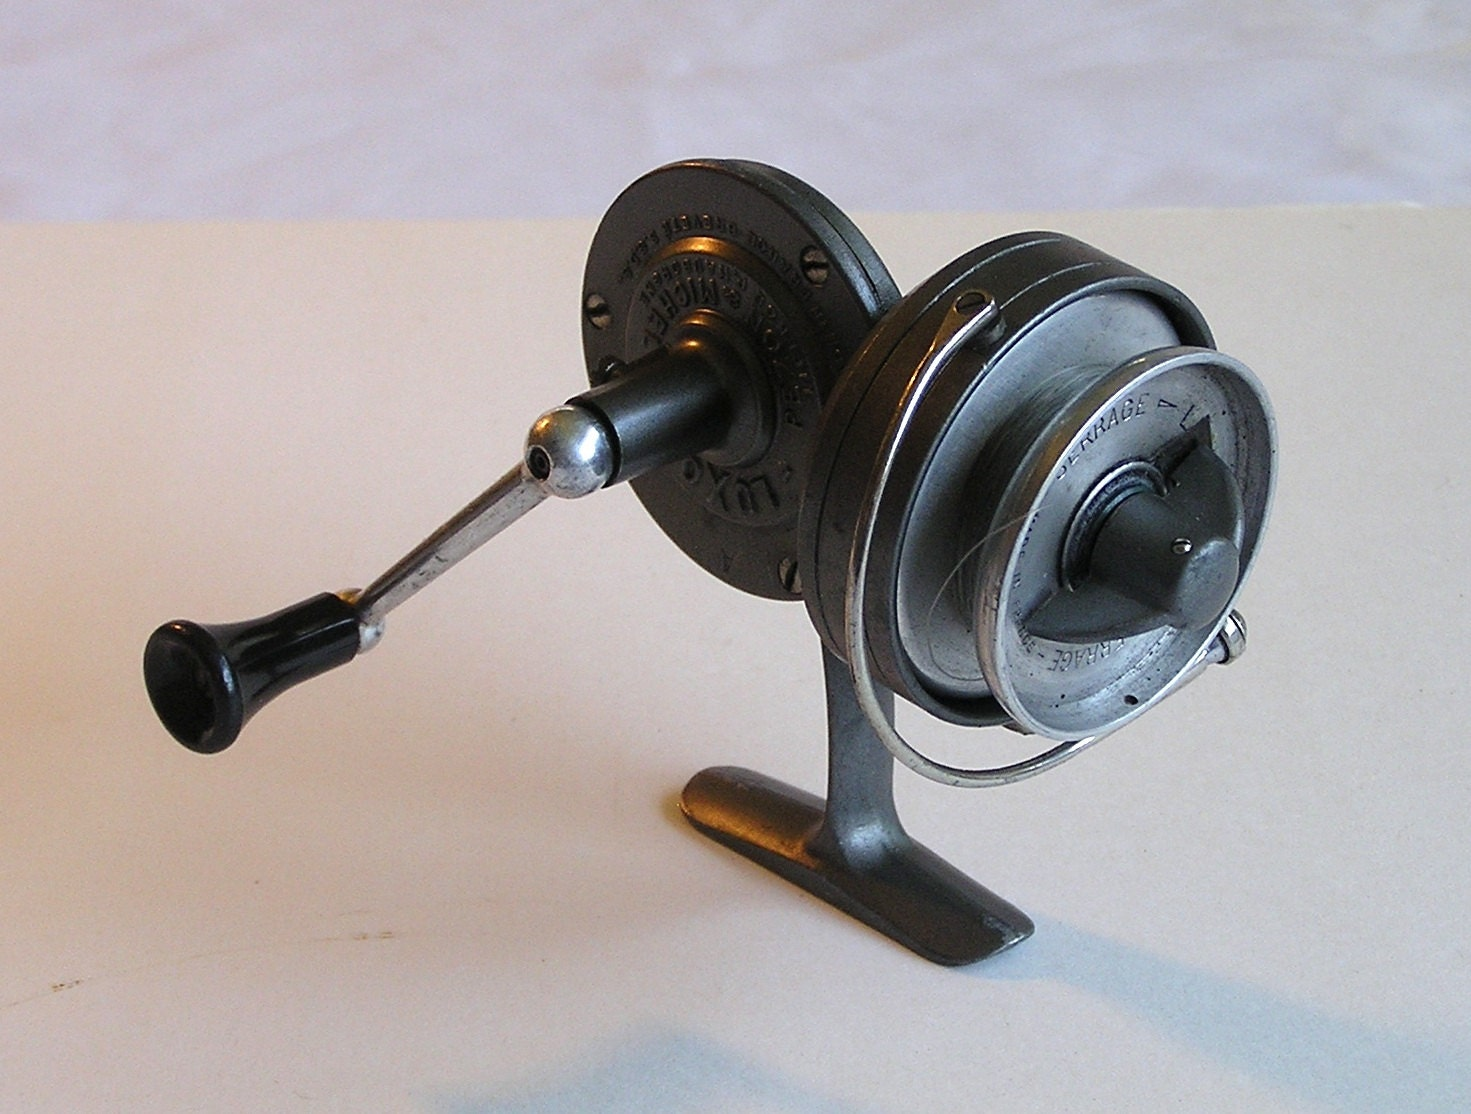 Vintage luxor mer pezon et michel fishing reel by for Antique fishing reels